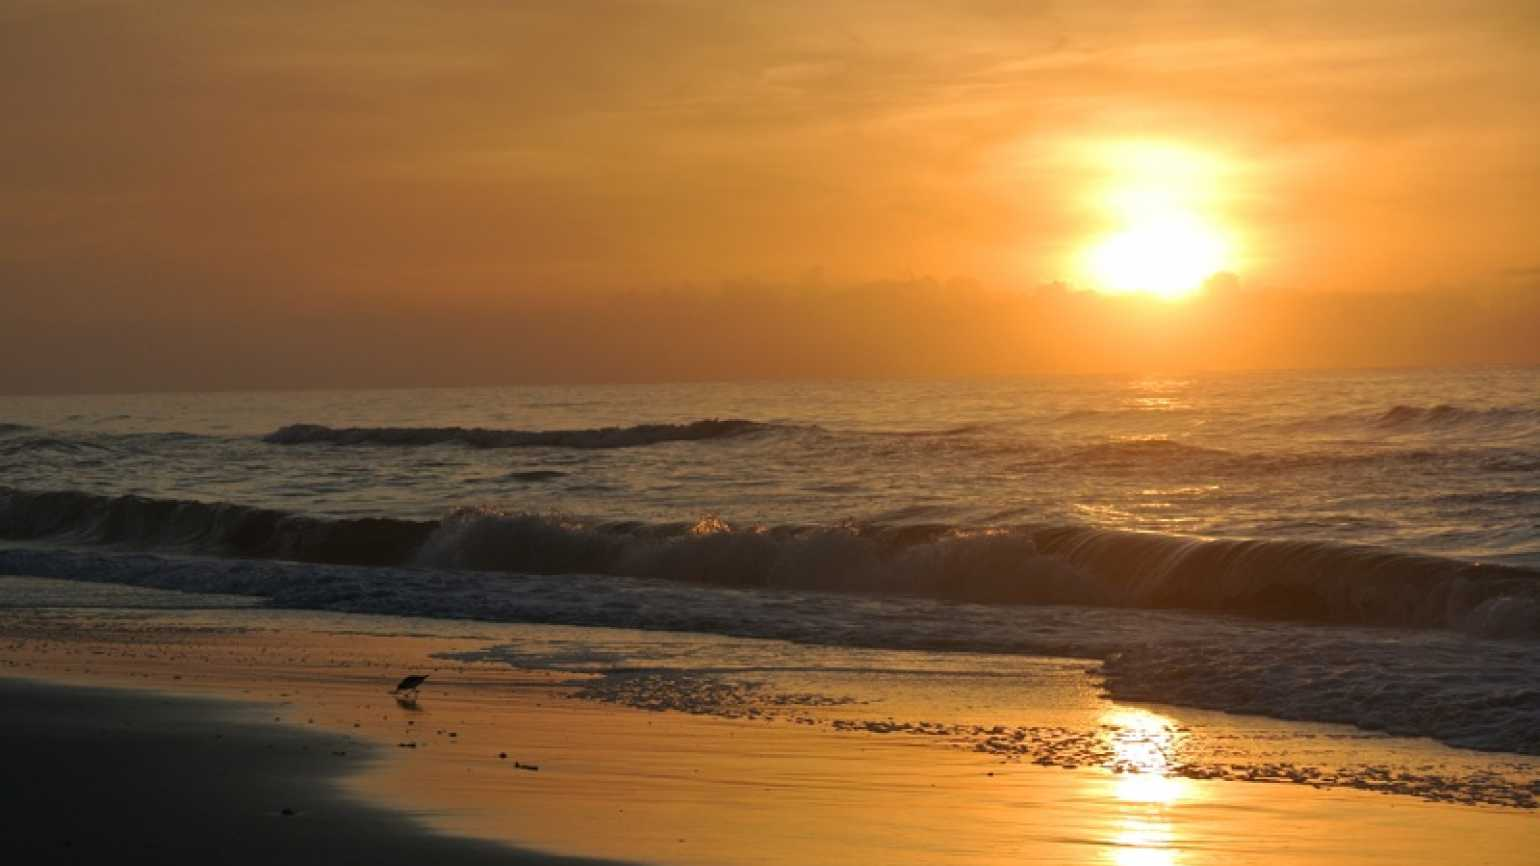 A beautiful sunrise at the beach with a bird in the waves